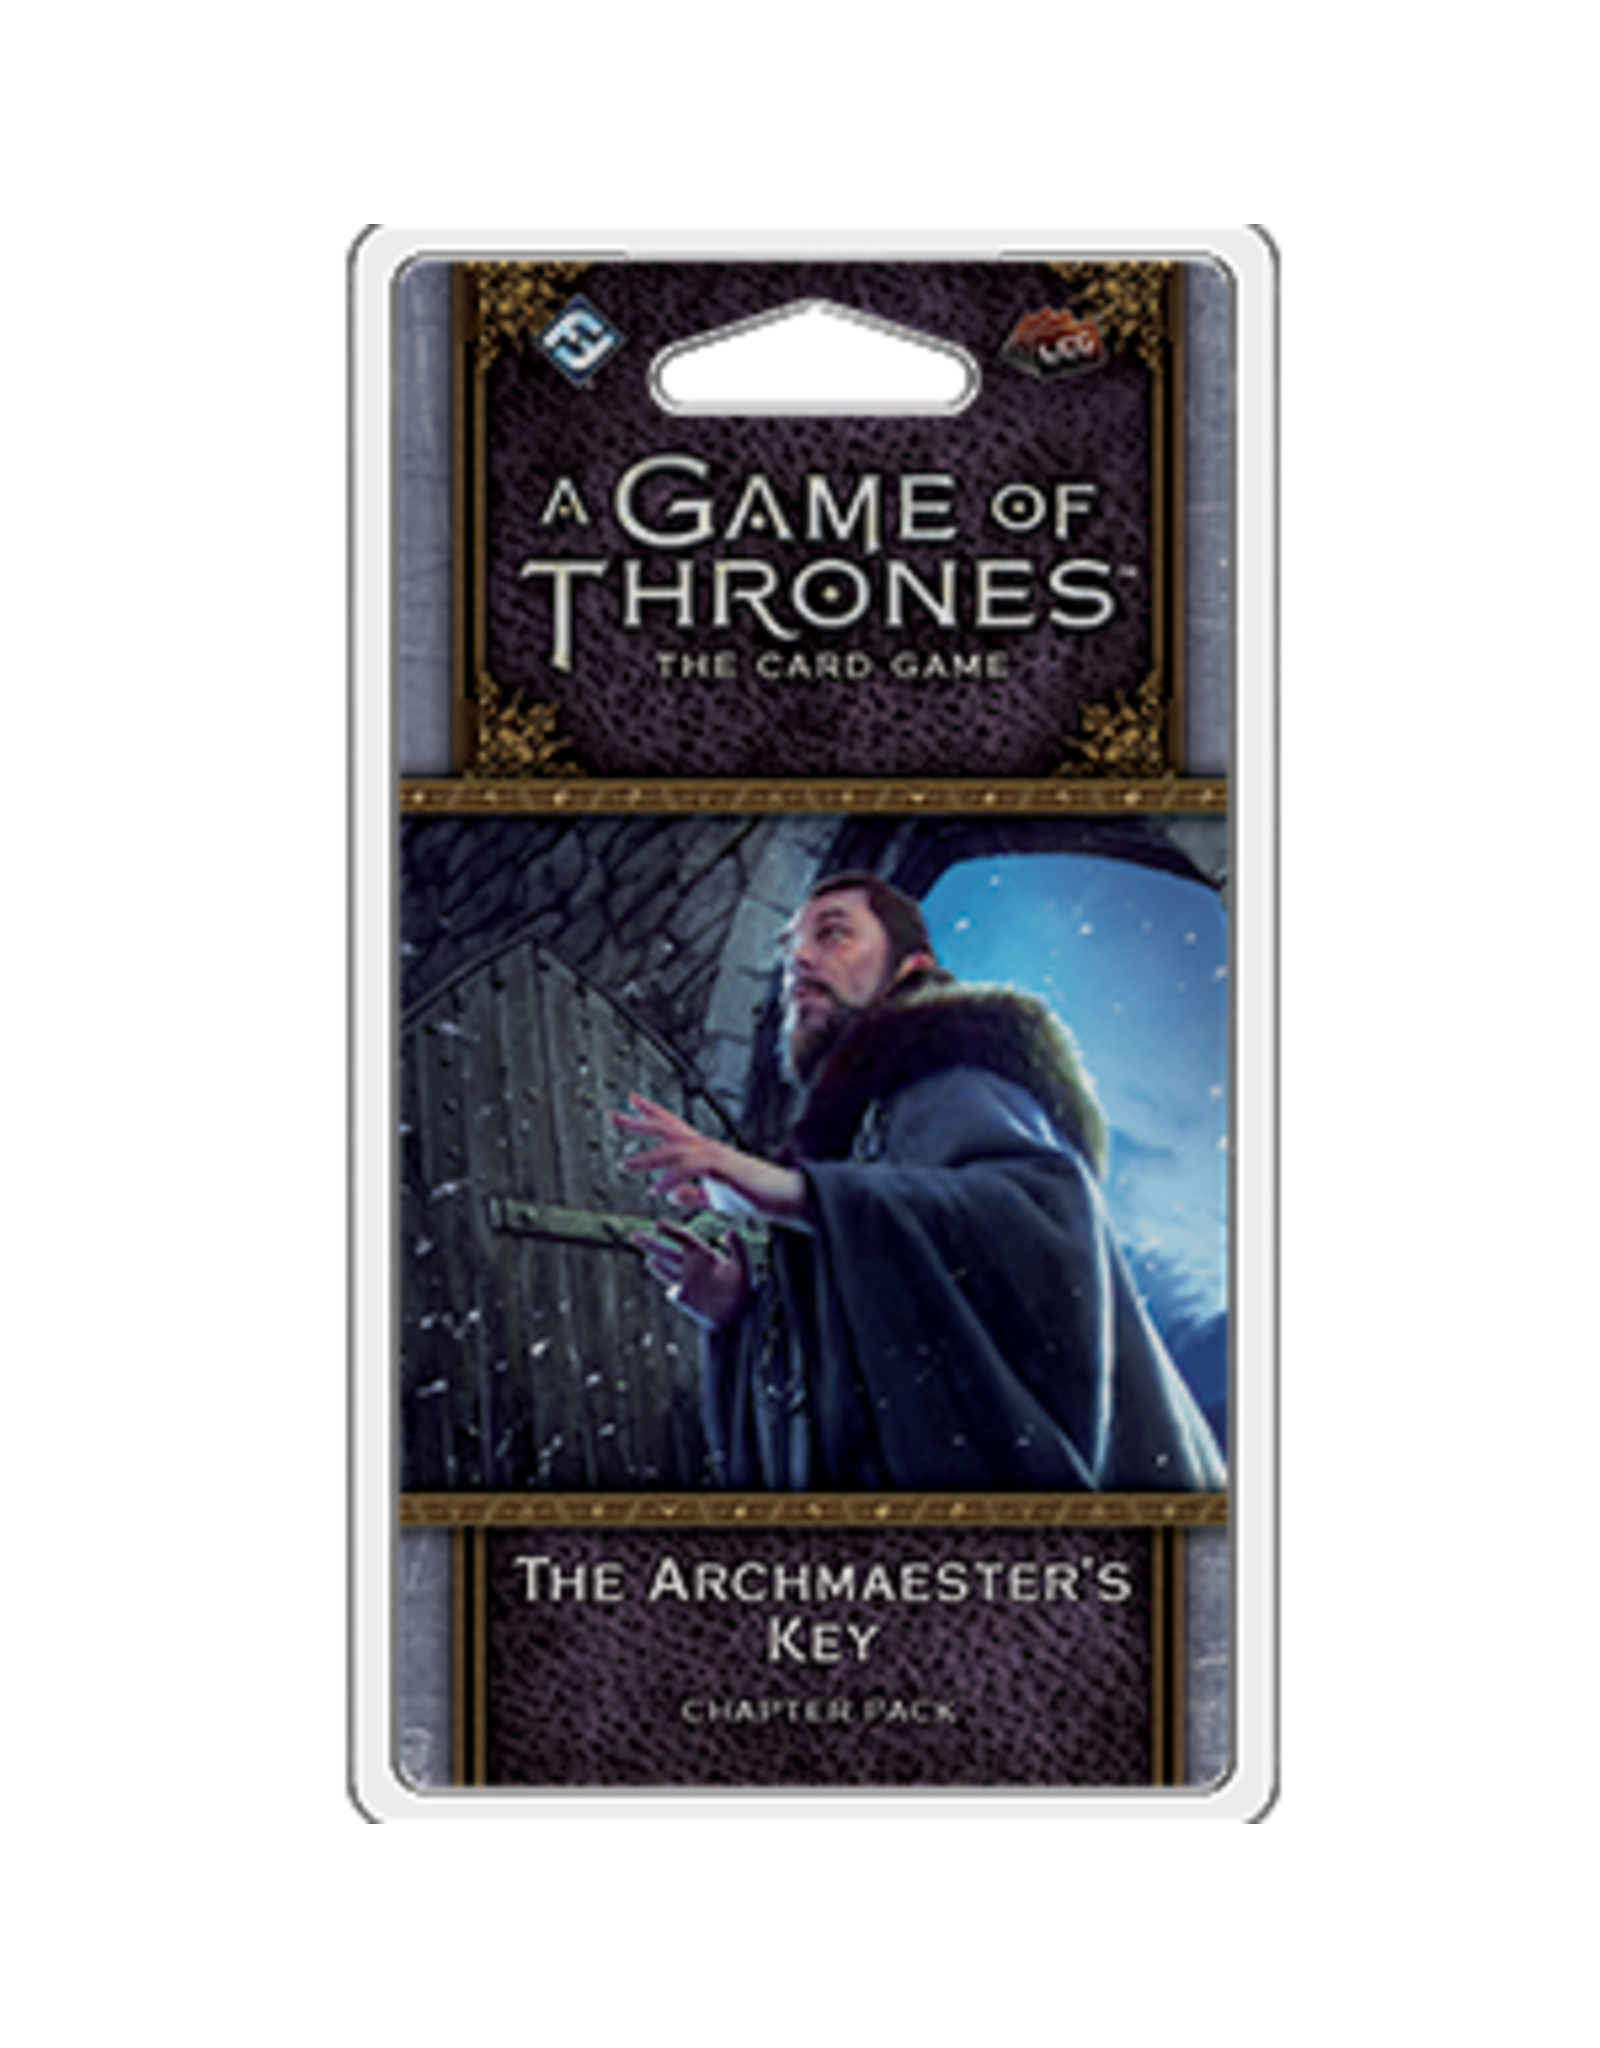 Fantasy Flight Games A Game of Thrones LCG: Flight of Crows Cycle: The Archmaester's Key Chapter Pack